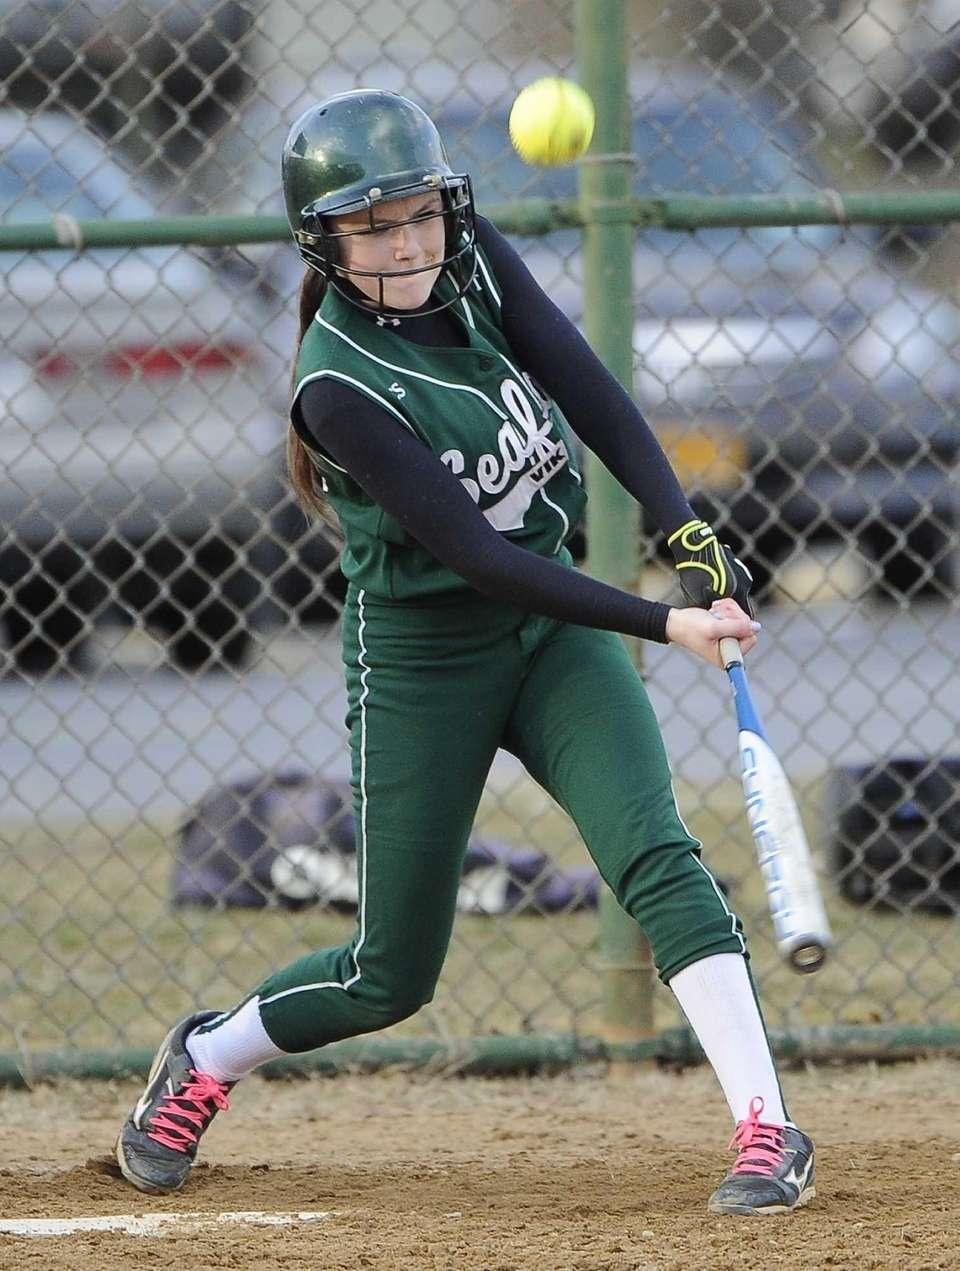 Seaford's P. De Napoli hits an RBI single